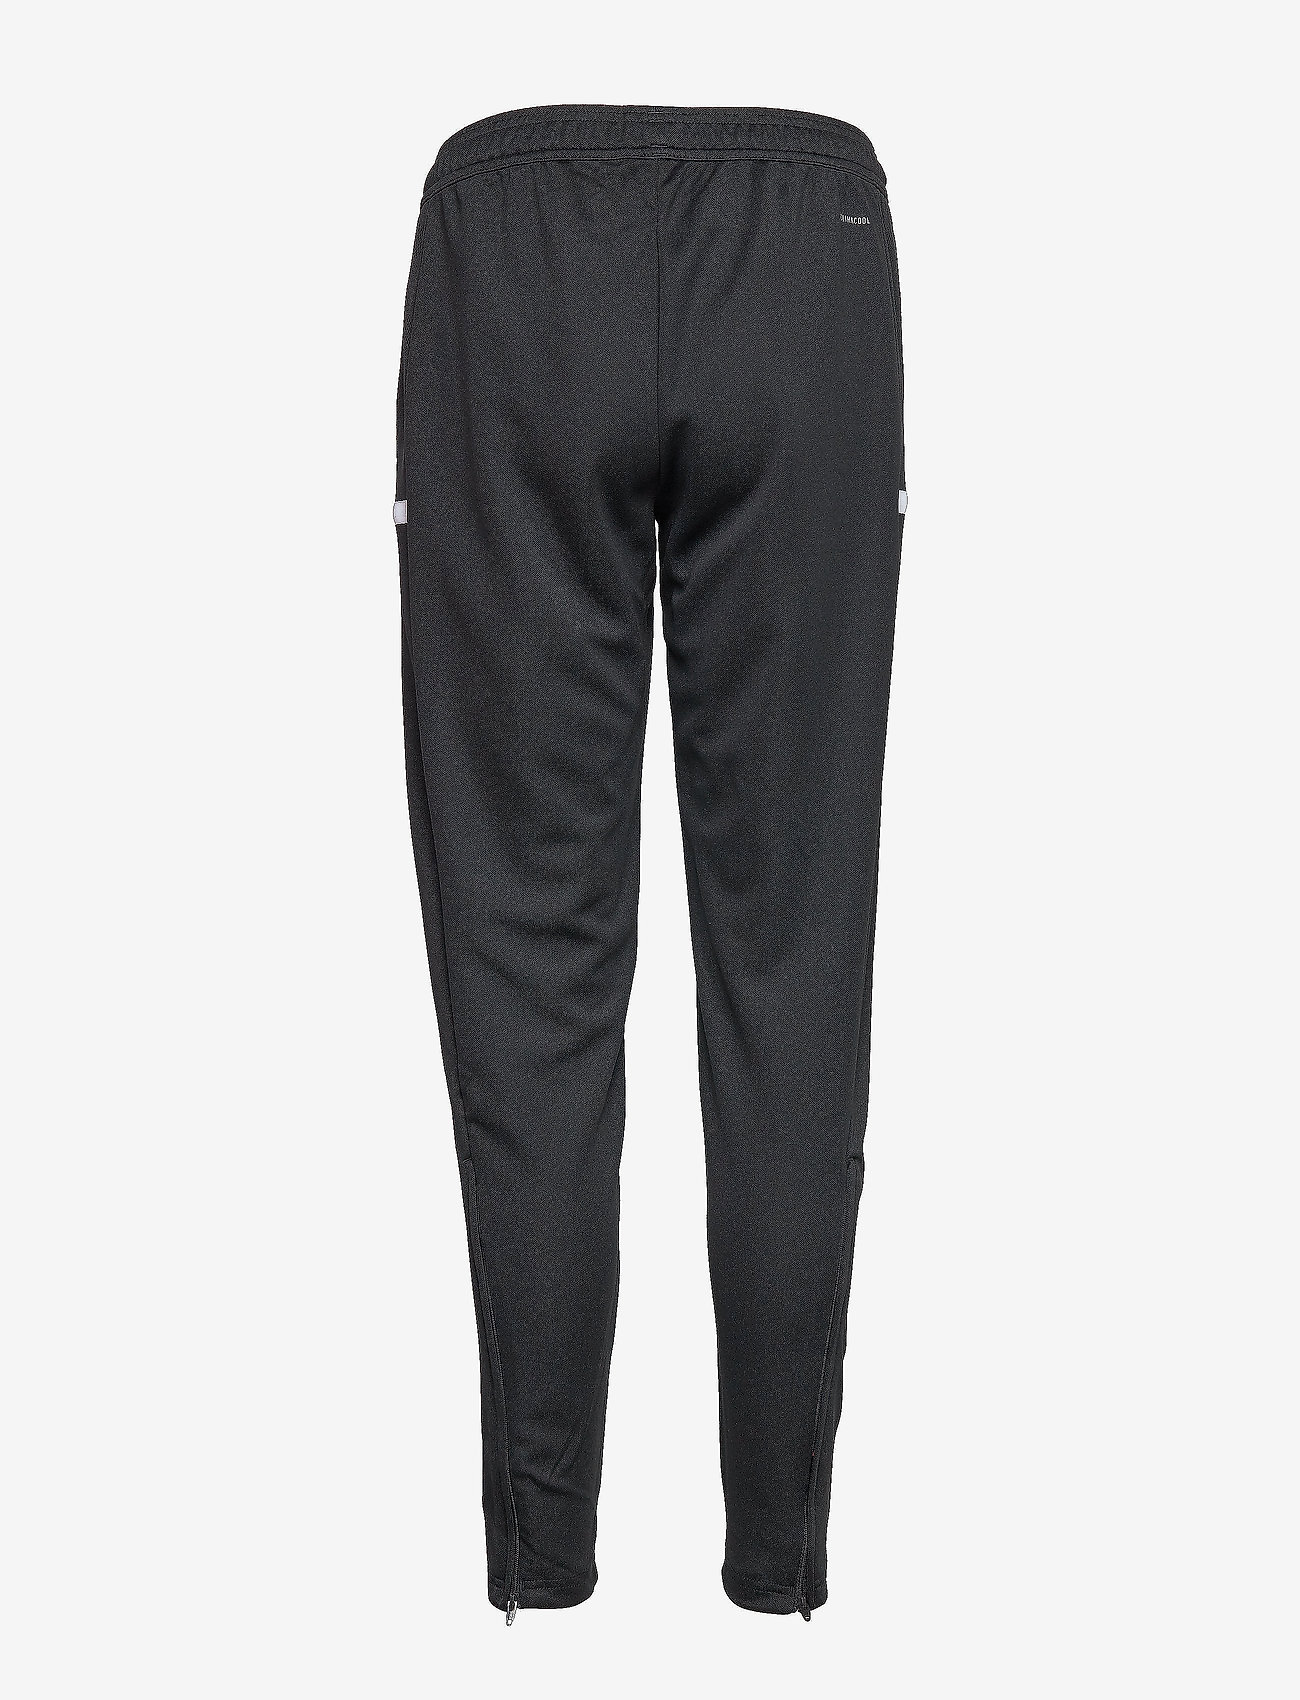 adidas Performance - Team 19 Track Pants W - sportbroek - black/white - 1